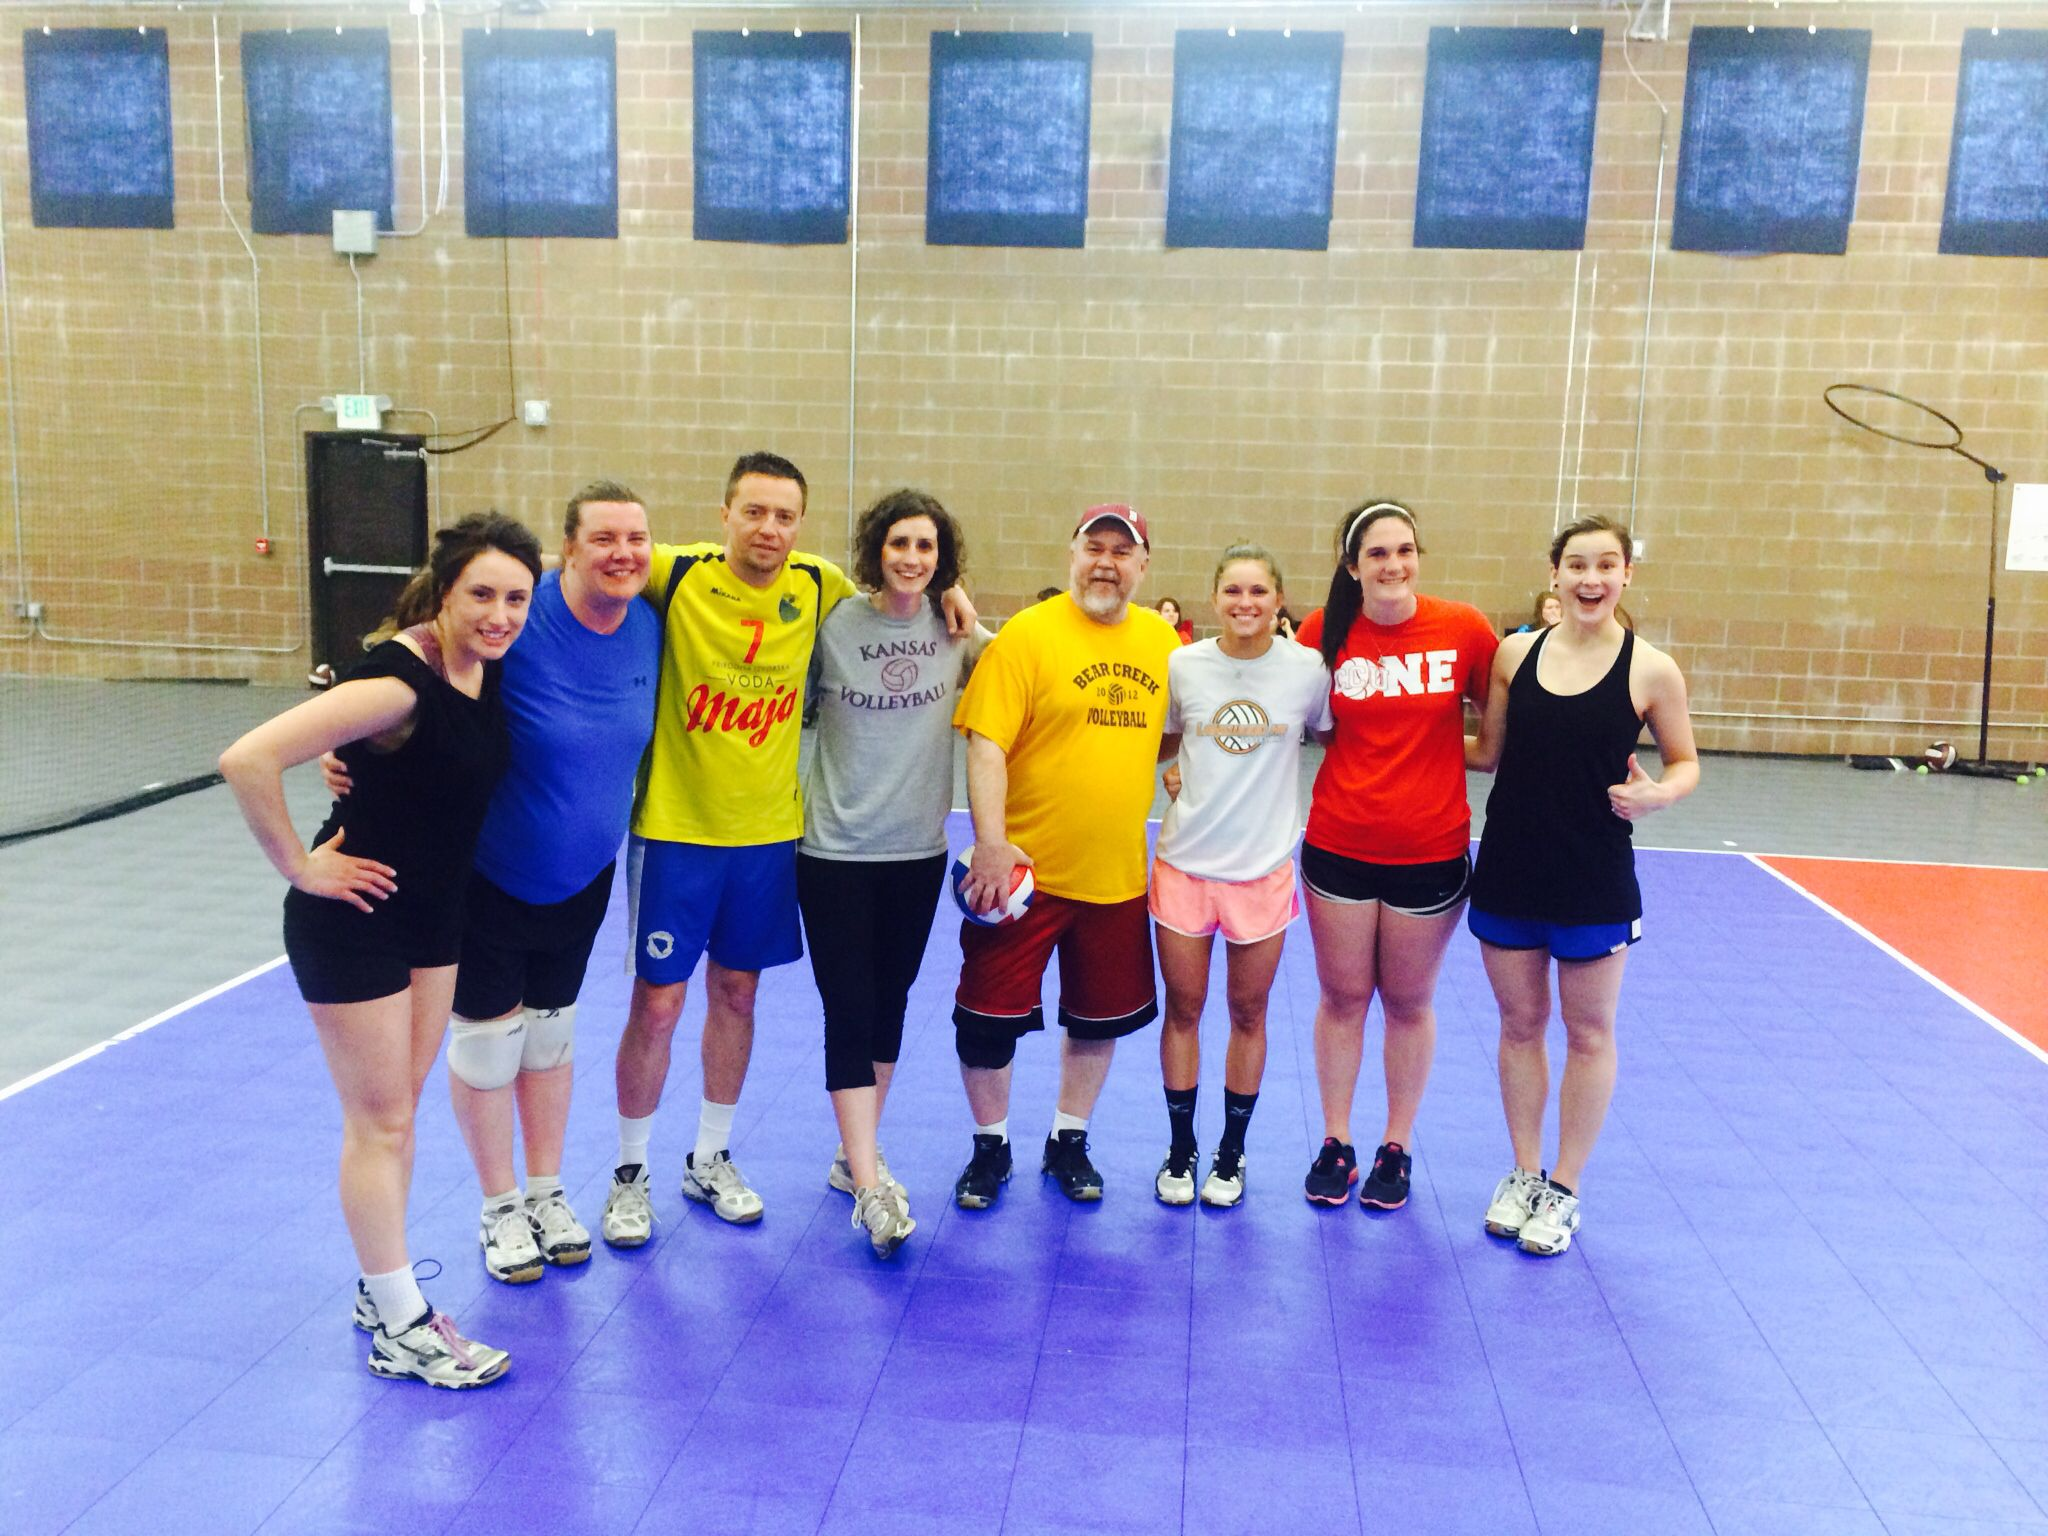 Edge Coaches Rock Our Club Director Jim Is The One Holding The Molten Ball Youcouldwin Usa Volleyball Proud Mom Coaching